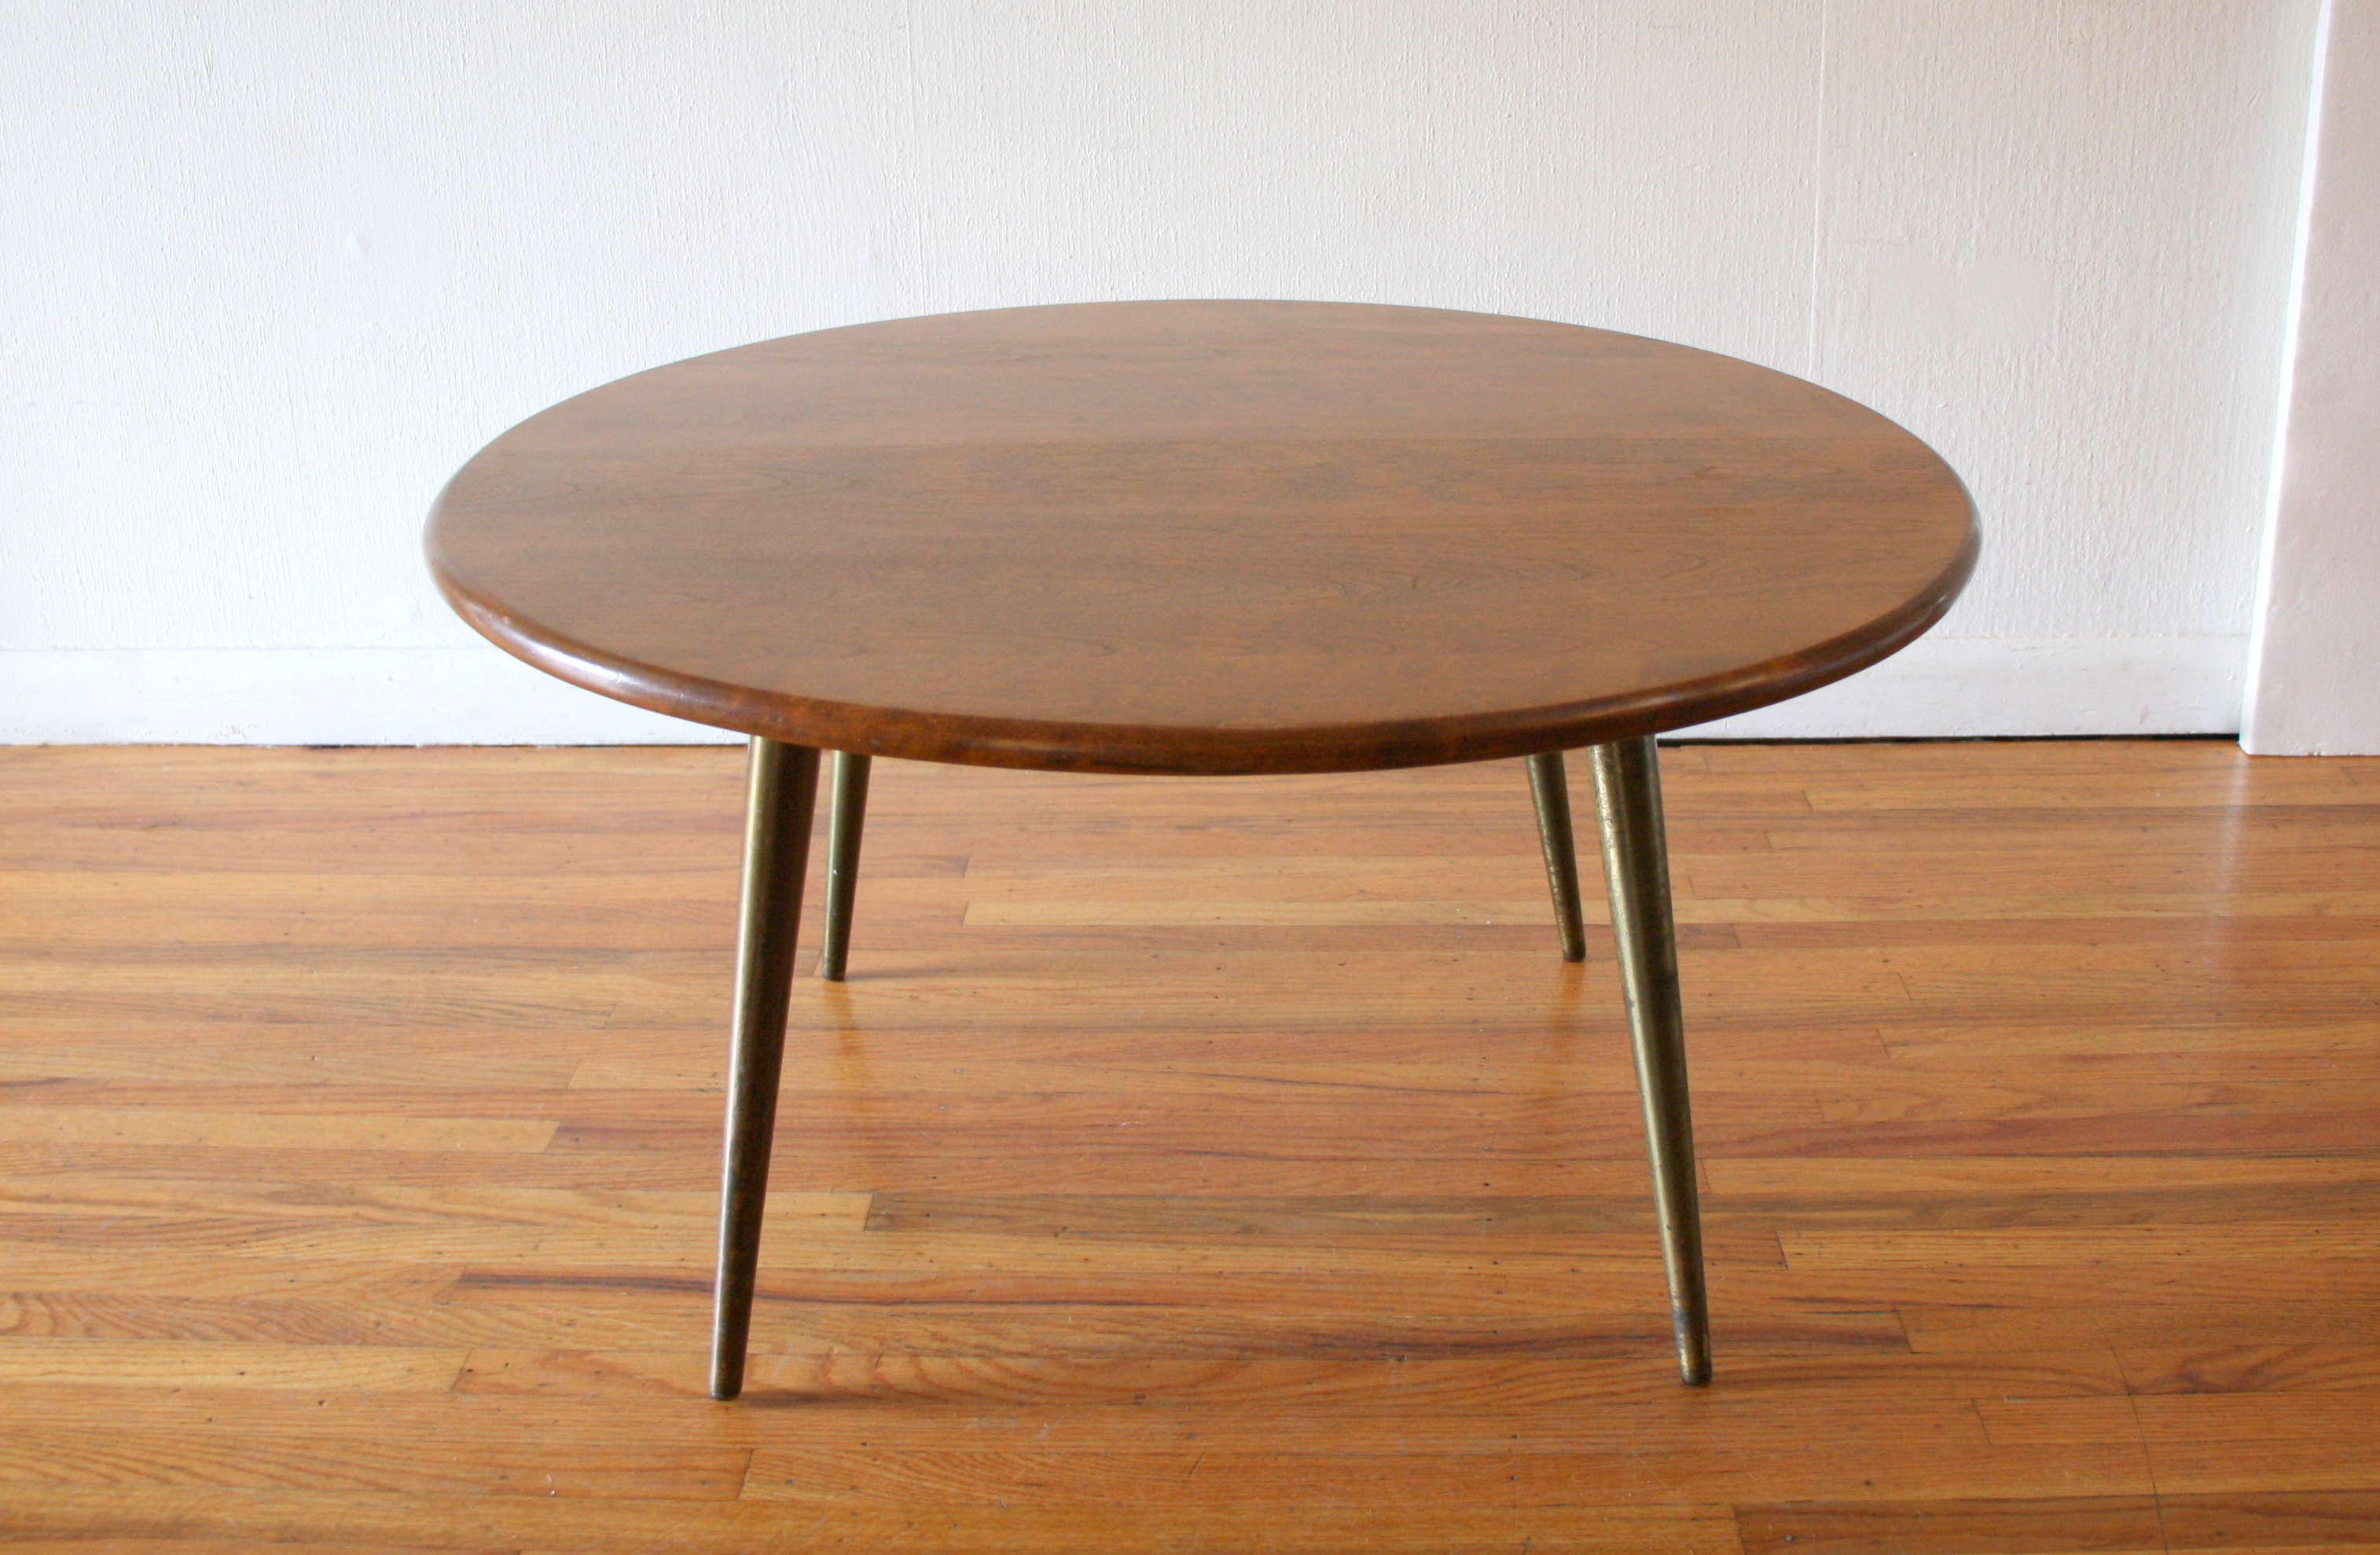 Conant Ball round coffee table 4